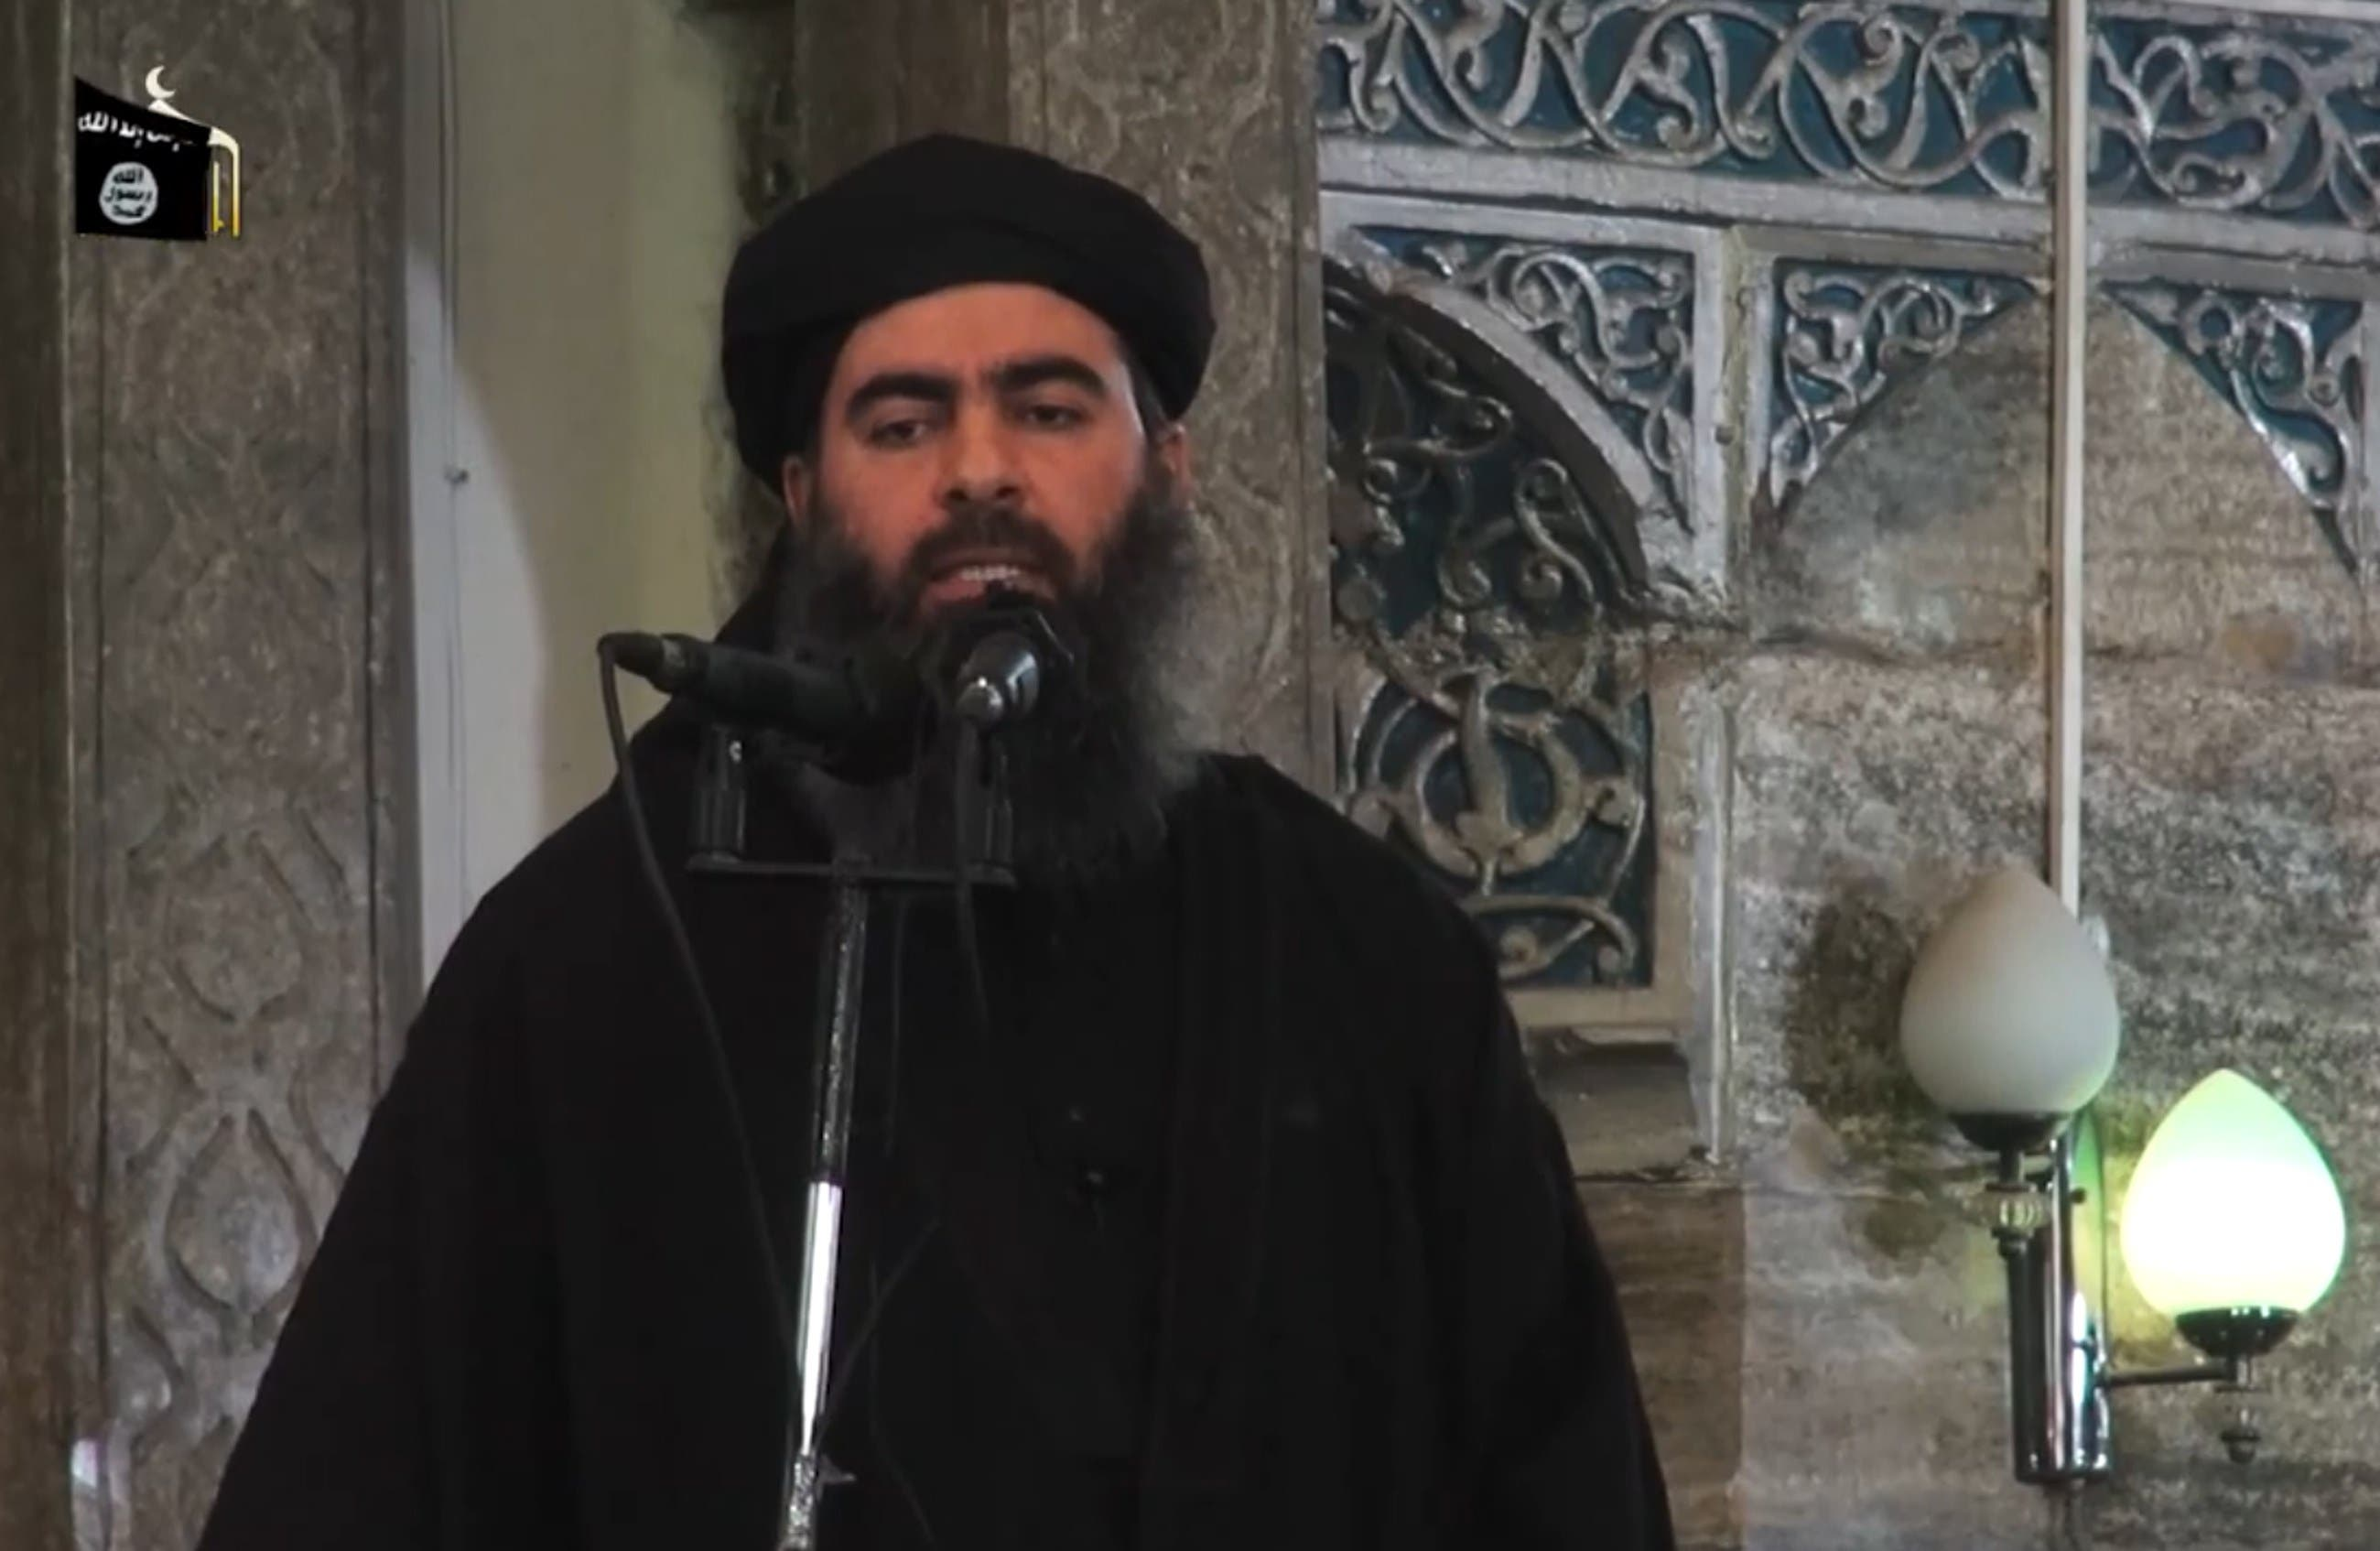 An image grab taken from a propaganda video released on July 5, 2014 by al-Furqan Media allegedly shows the leader of the Islamic State (IS) jihadist group, Abu Bakr al-Baghdadi afp